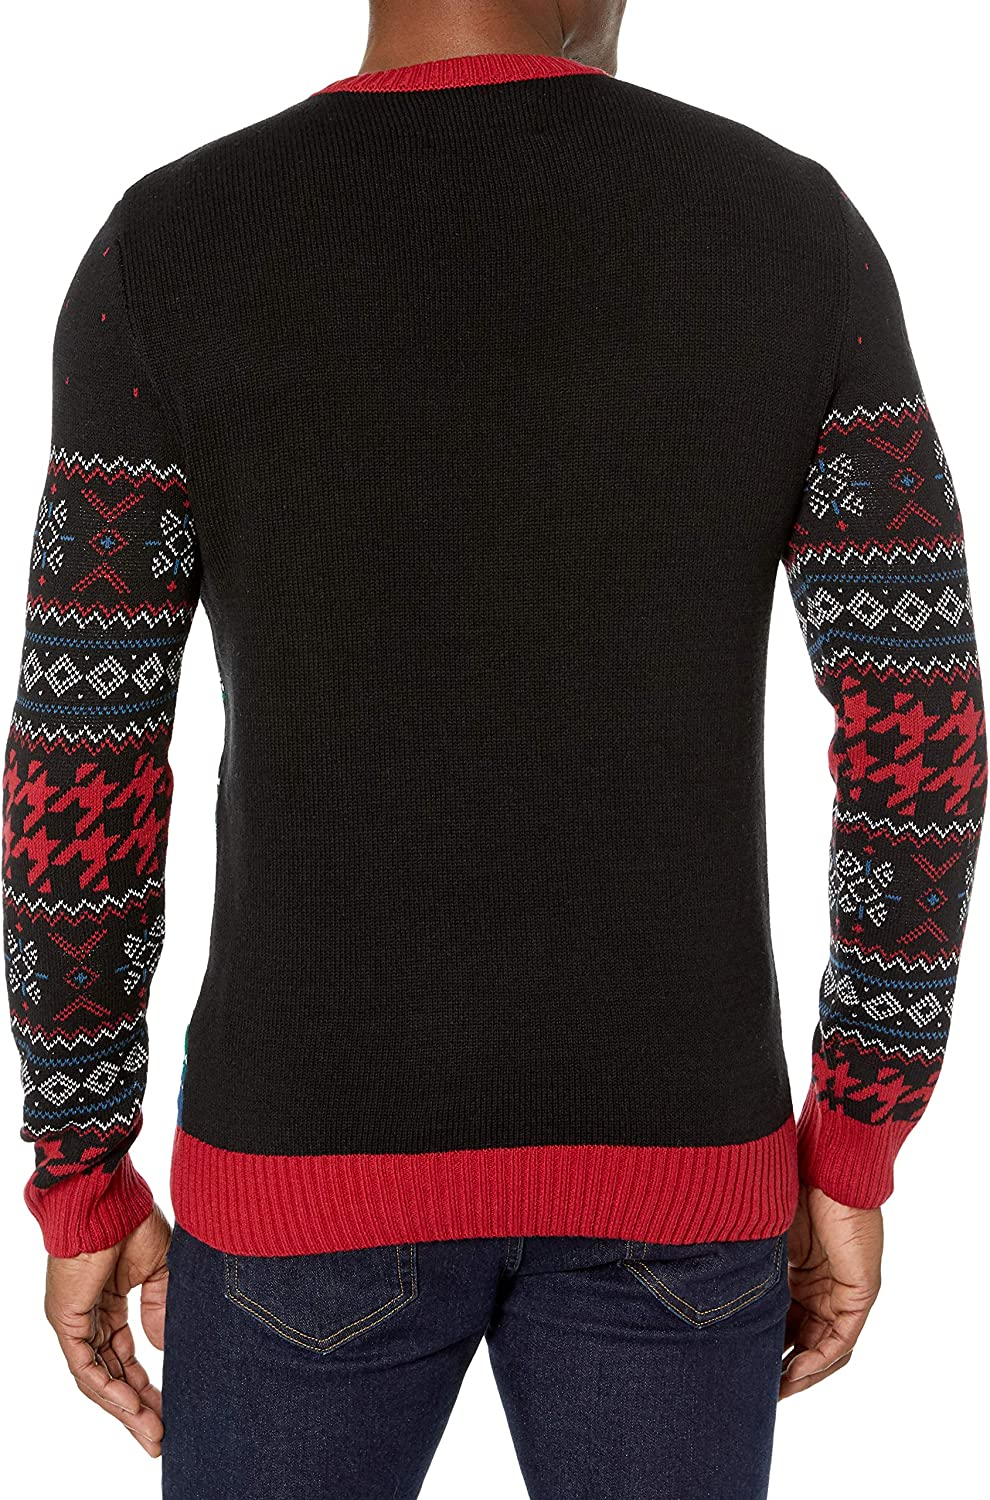 Ugly Christmas Sweater Company Mens Long Sleeve 7gg Crew Neck Sweater Pullover Sweater